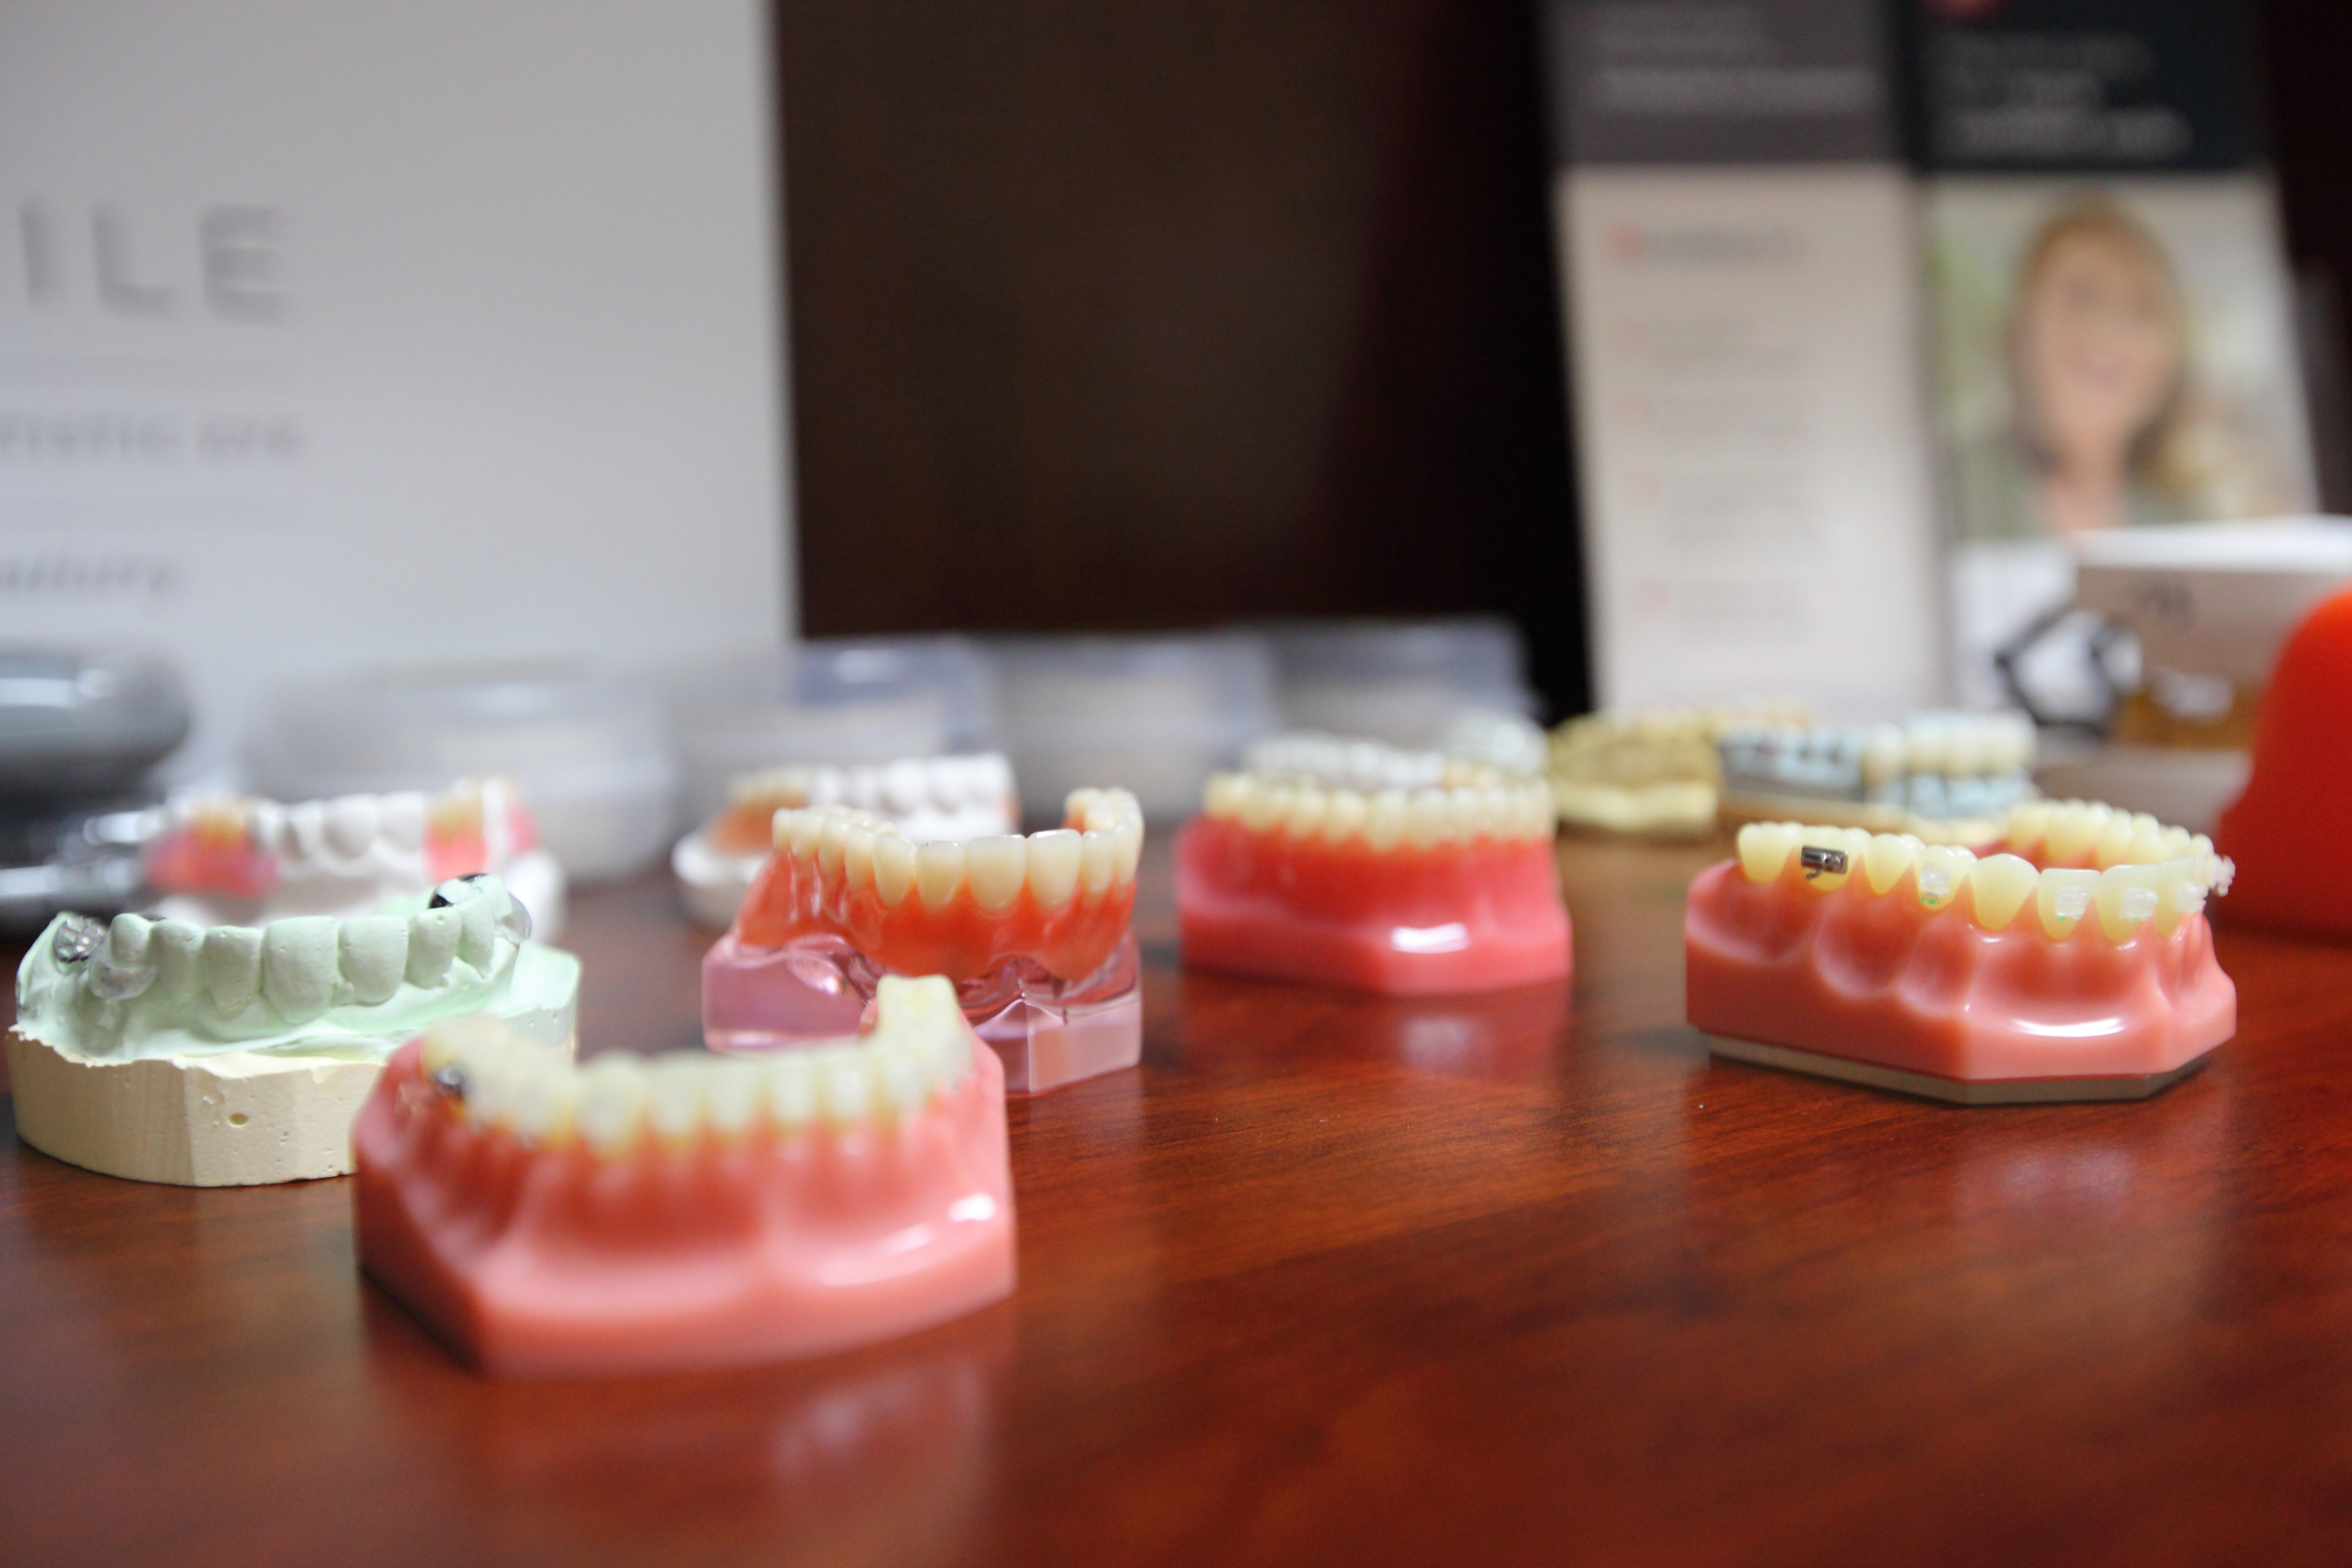 models of teeth from Kelly Smile in Victorville, CA